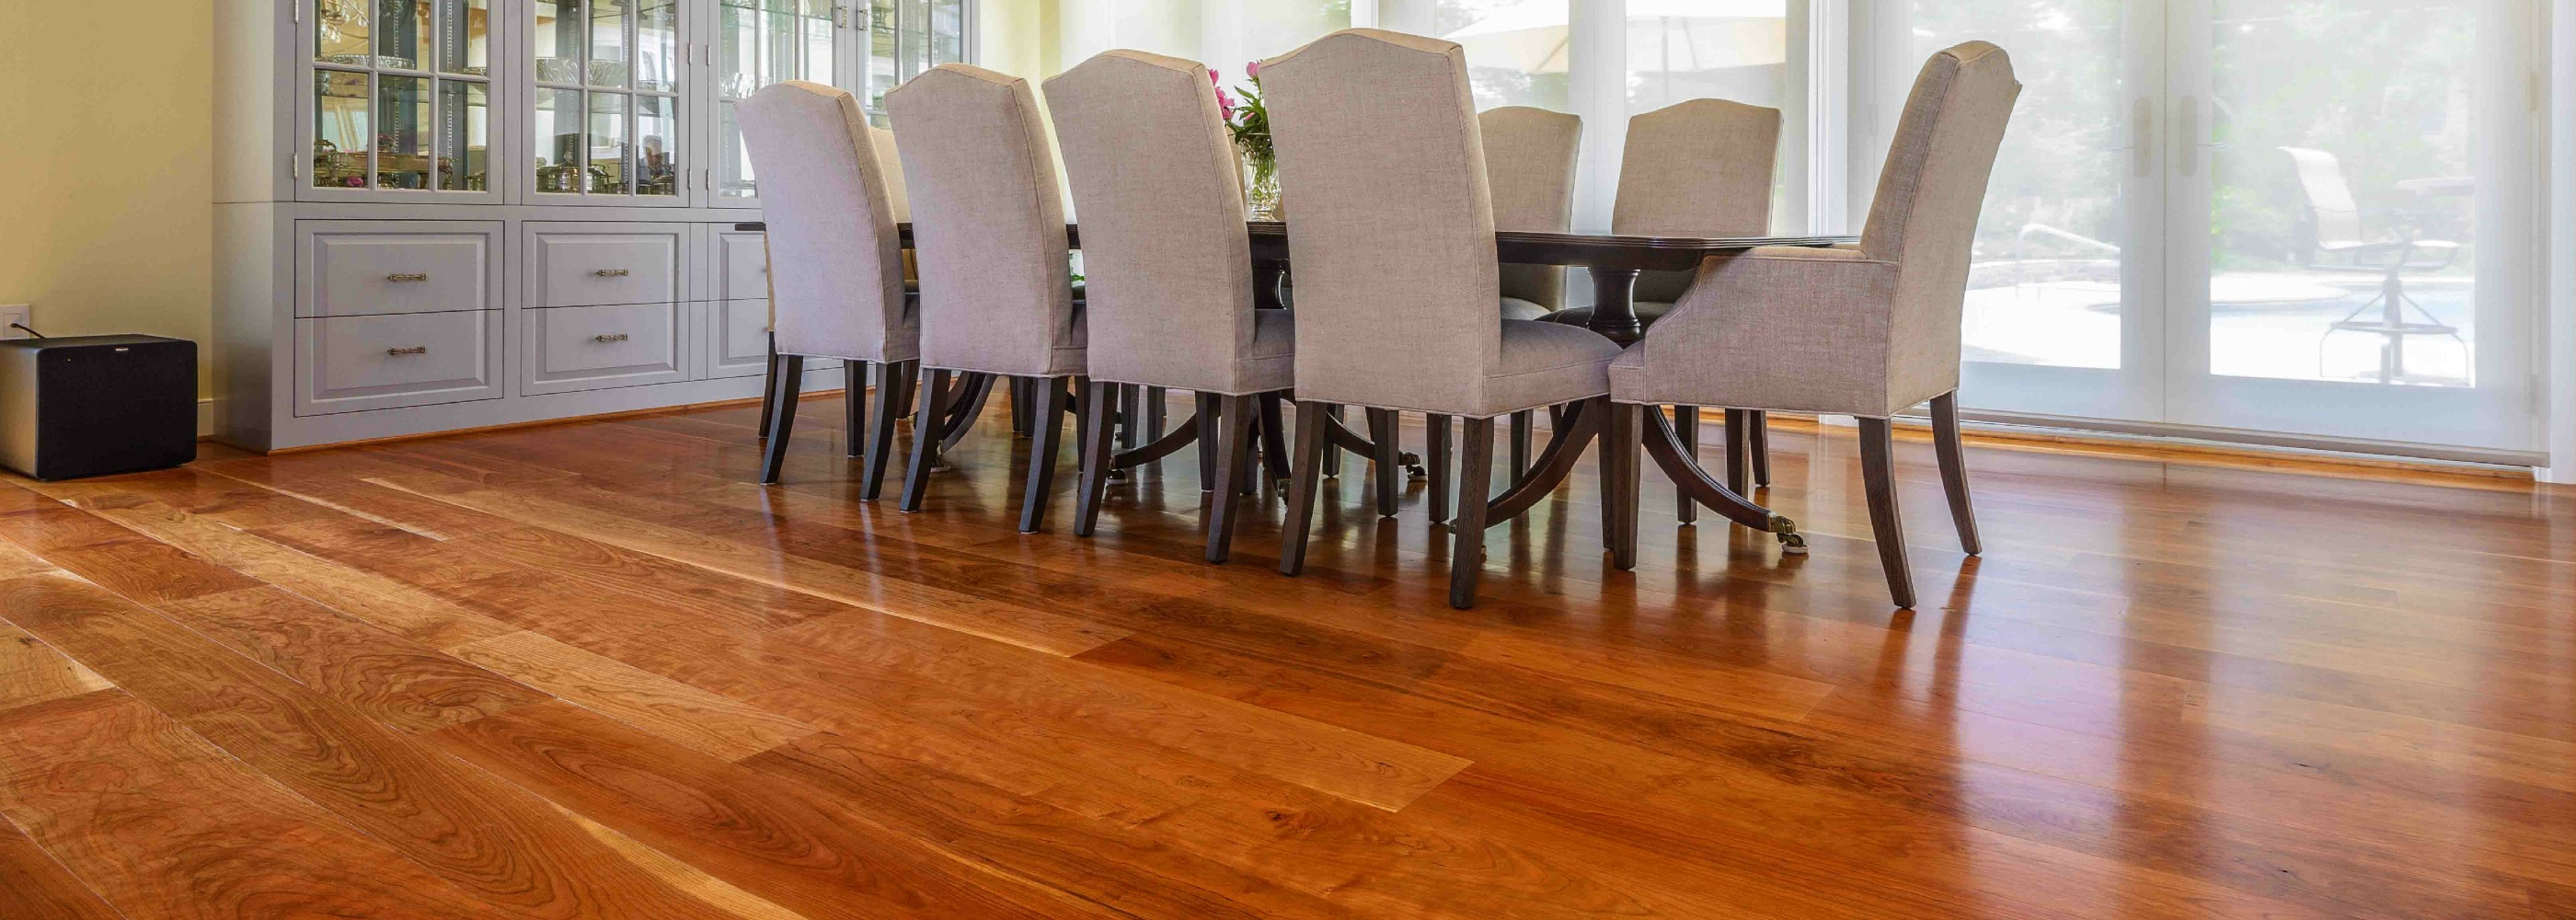 wood walnut lacquered floor american black engineered flooring